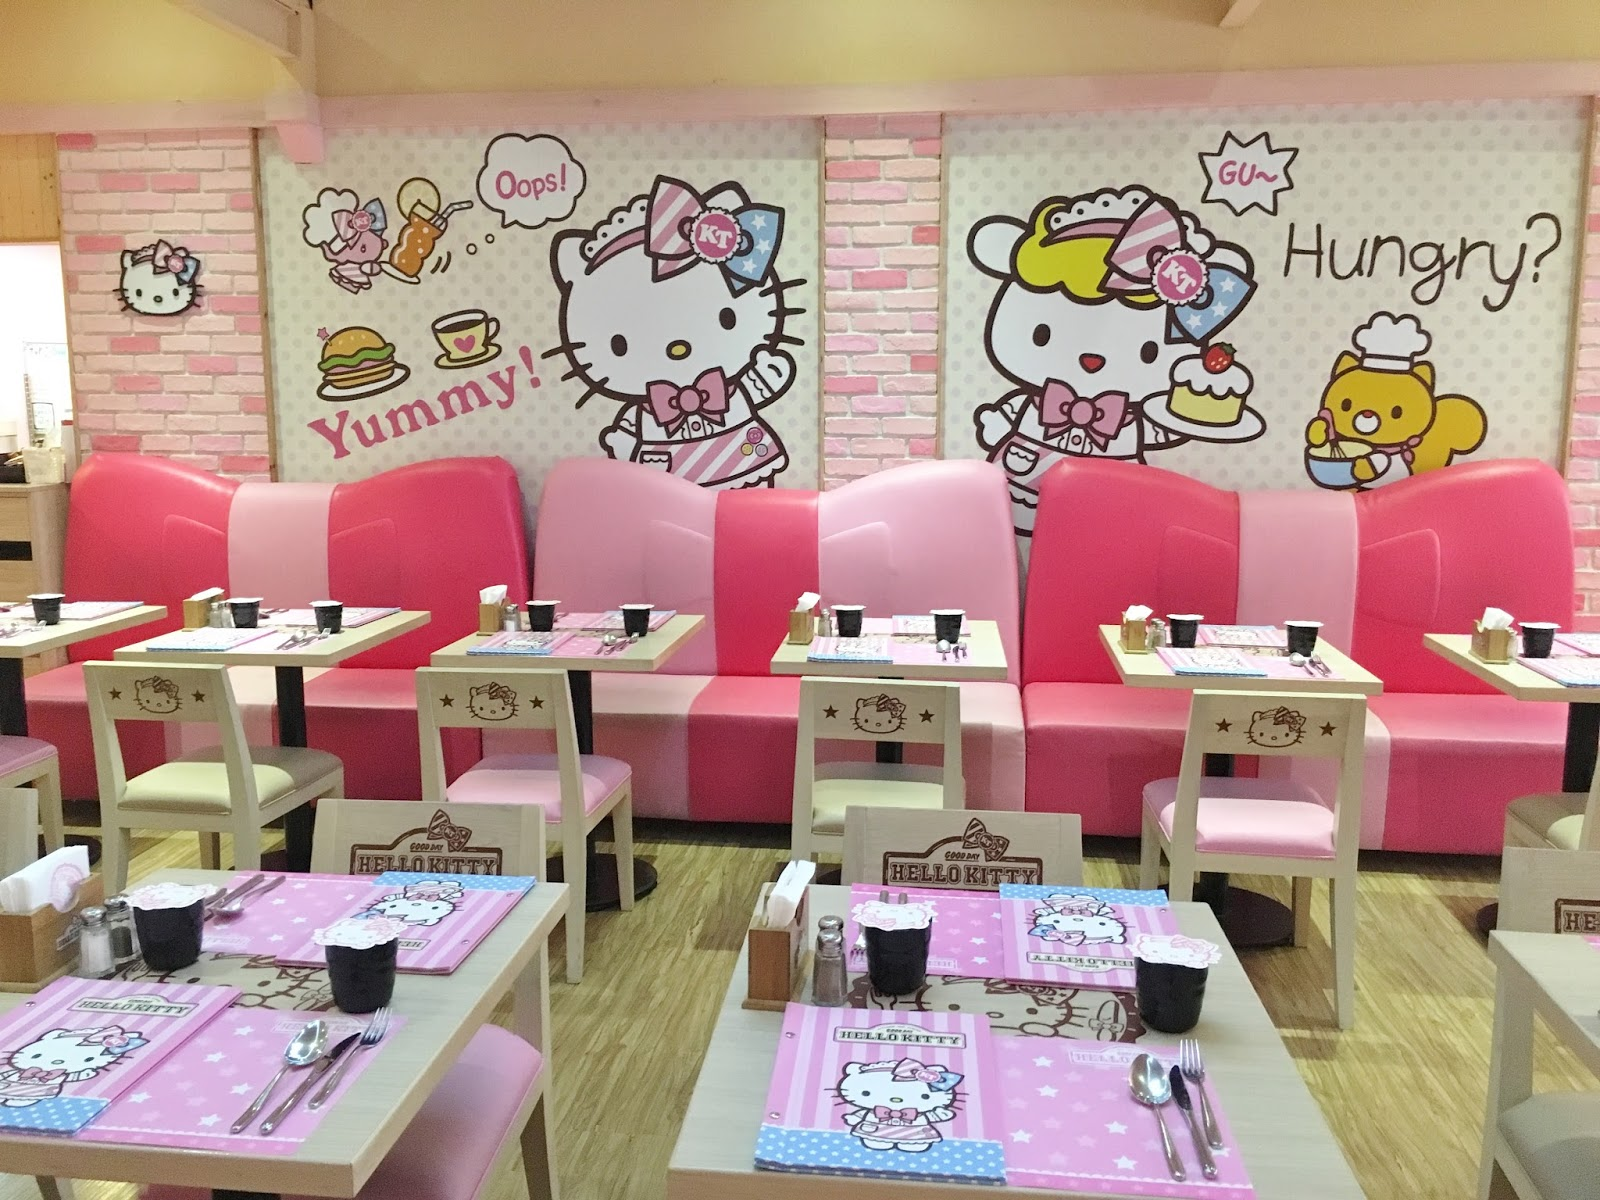 vanny's telling everything.: themed cafes in taipei - hello kitty